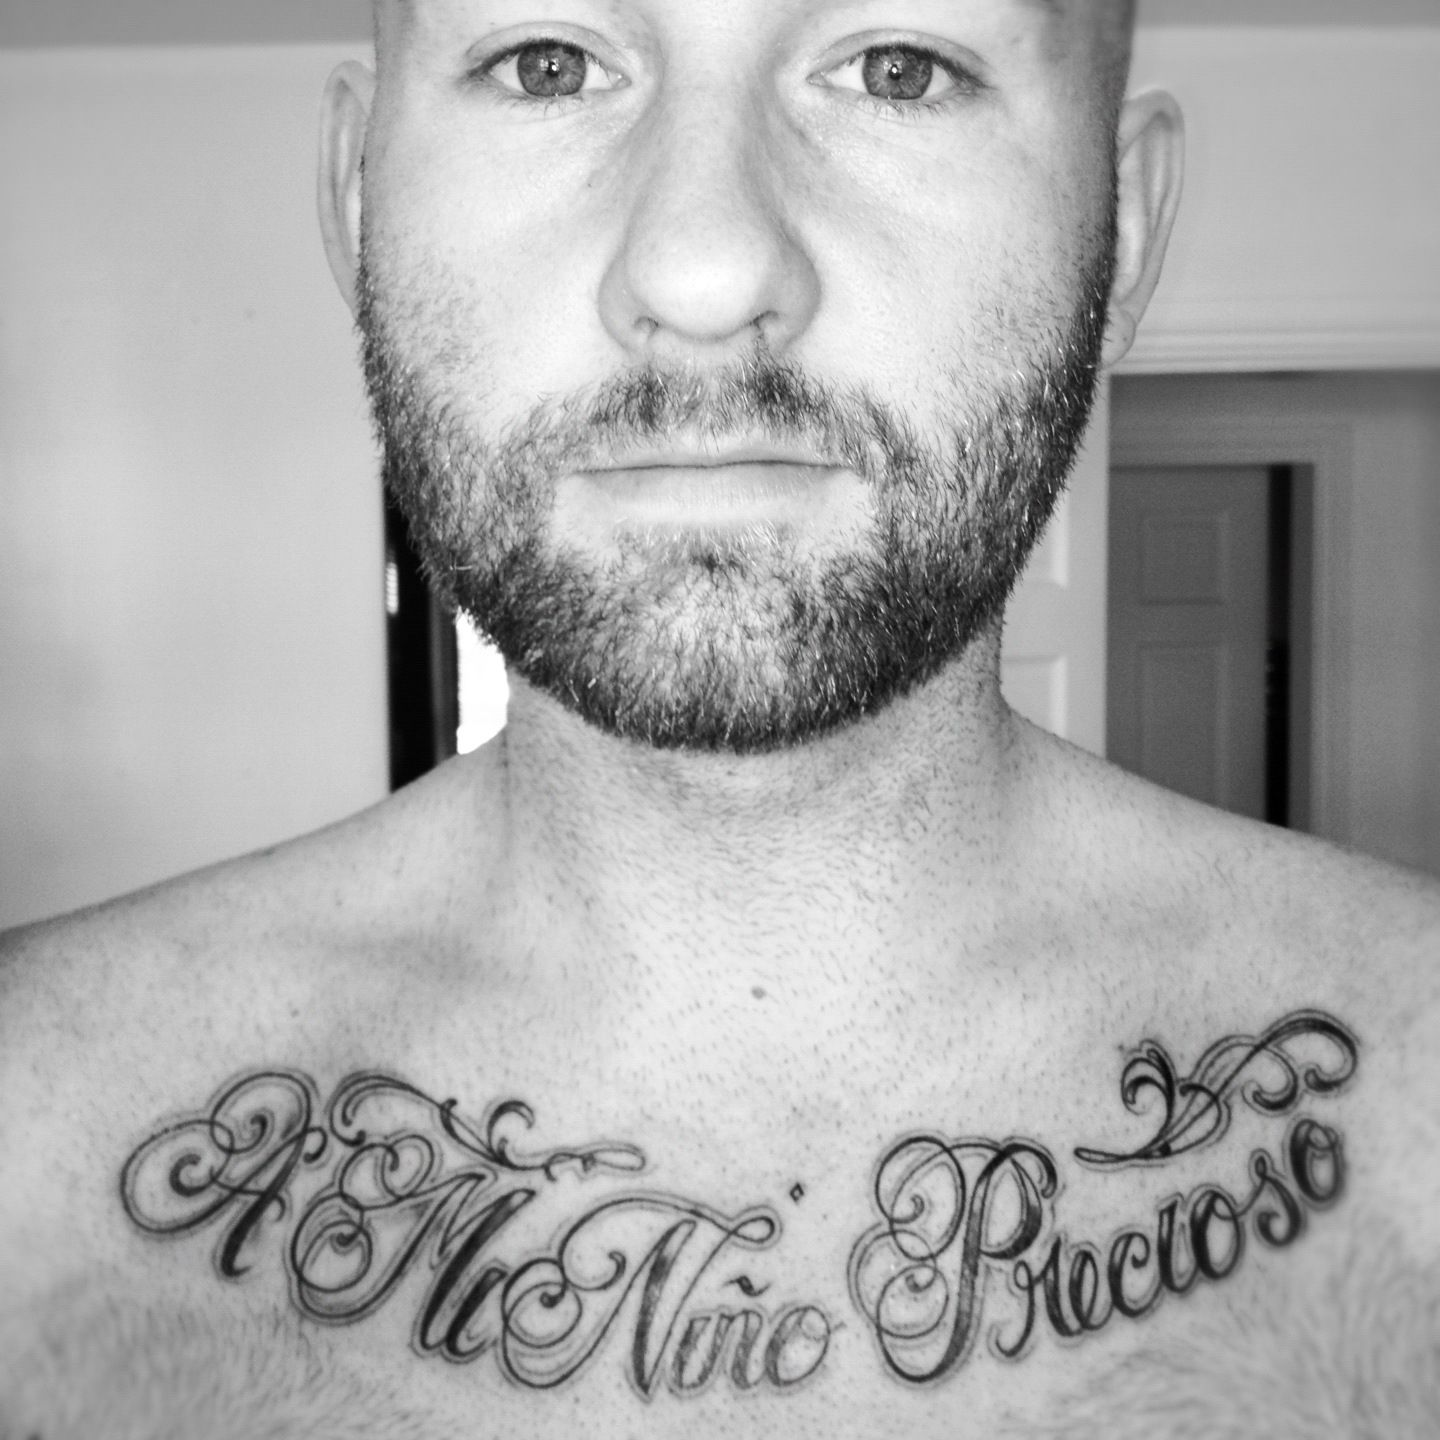 Chest Script Tattoo. Spanish Phrase - For My Precious Child. Chicano style font.